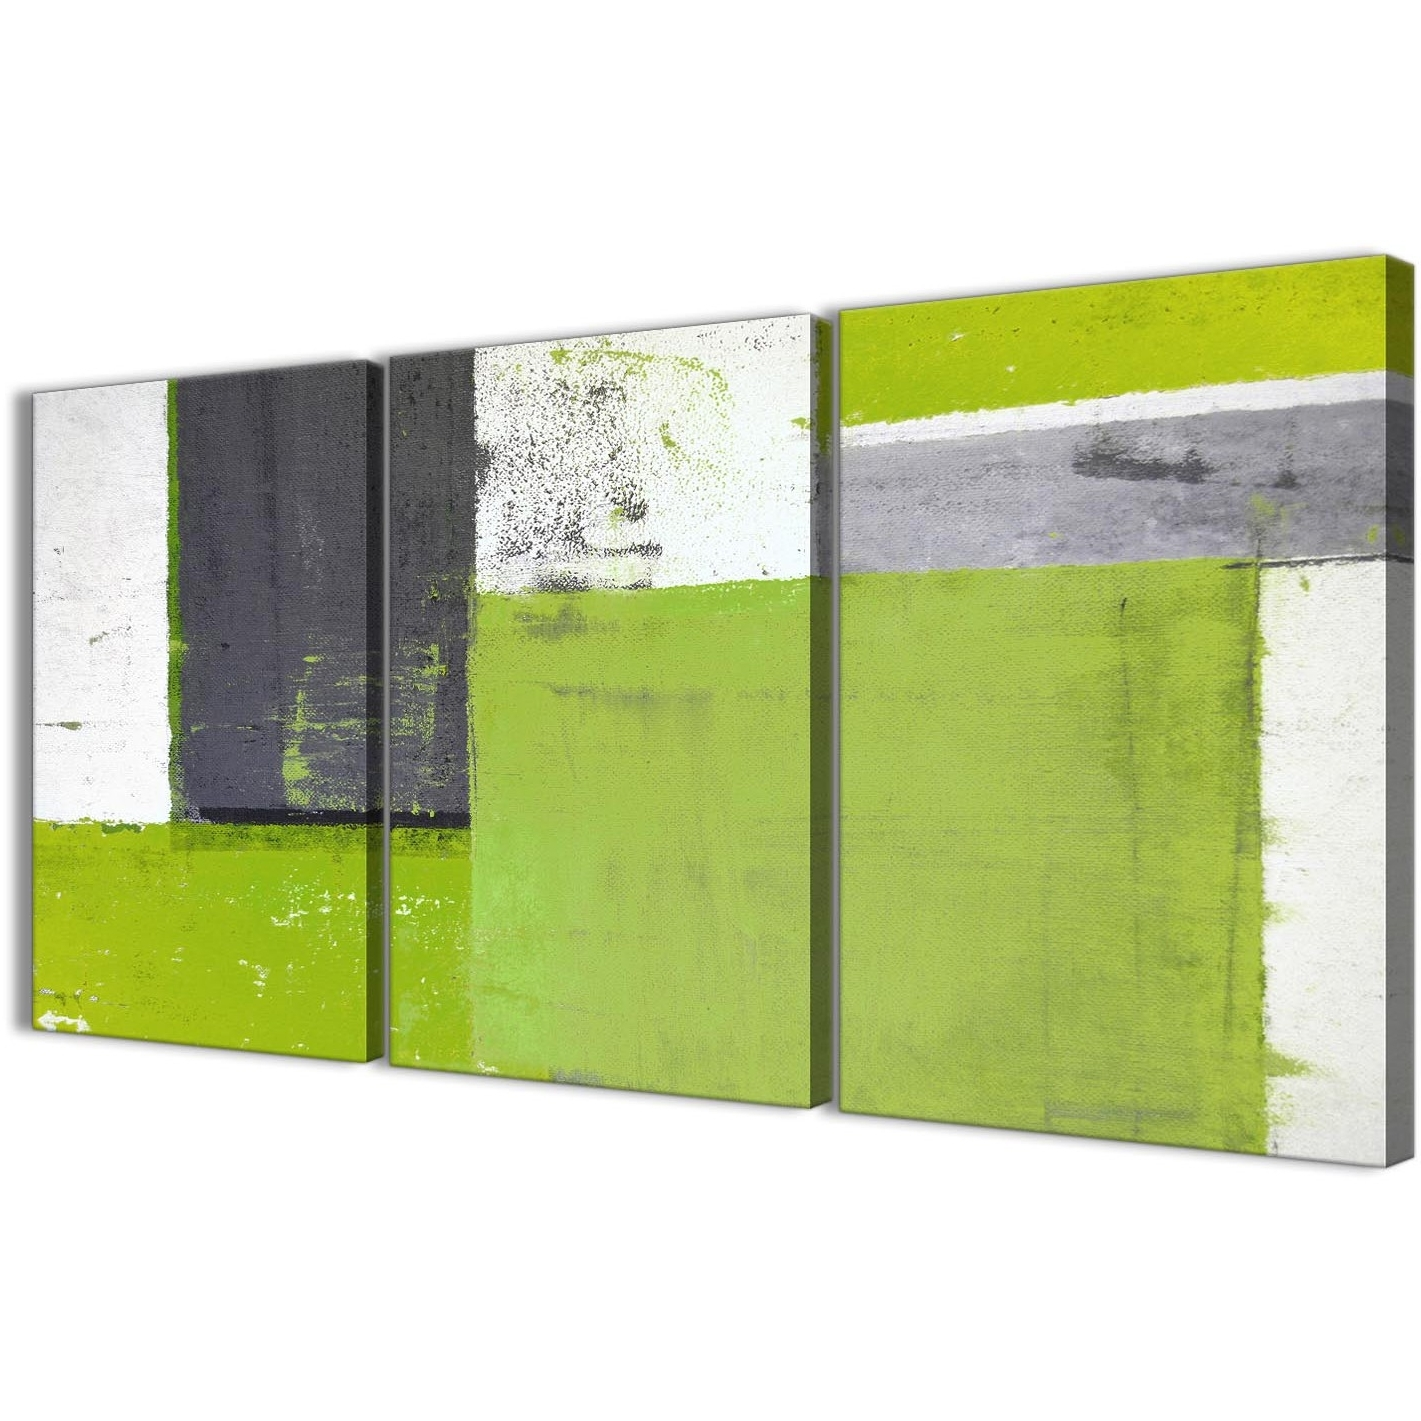 Lime Green Grey Abstract Painting Canvas Wall Art Print – Multi With Regard To 2018 Lime Green Canvas Wall Art (View 7 of 15)